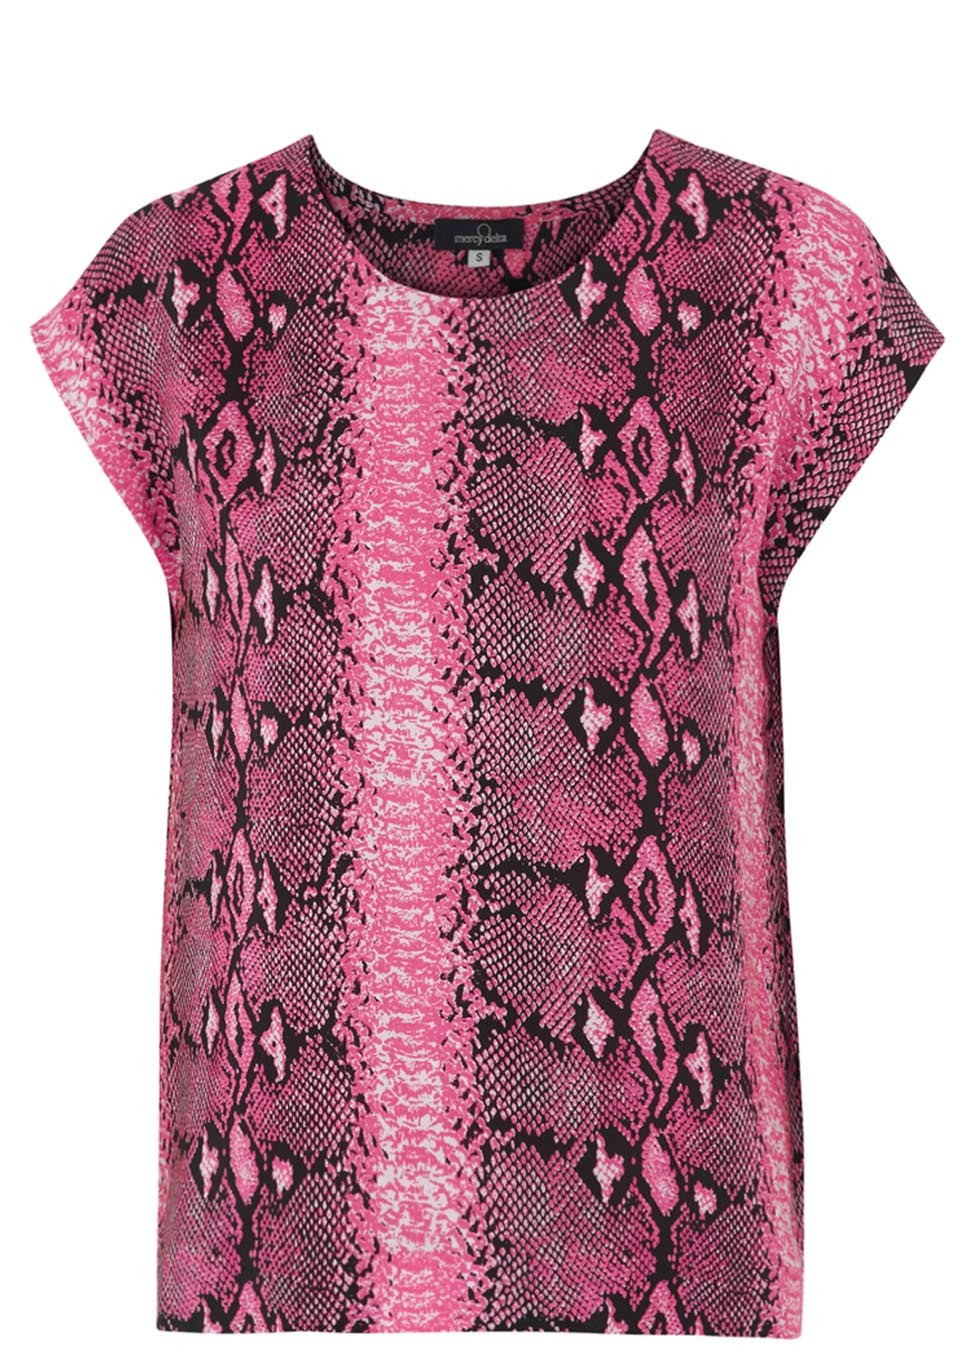 Blair Pink Print Silk Top - neckline: round neck; sleeve style: capped; style: t-shirt; secondary colour: aubergine; occasions: casual, creative work; length: standard; fibres: silk - 100%; fit: straight cut; sleeve length: short sleeve; texture group: silky - light; pattern type: fabric; pattern size: standard; pattern: animal print; predominant colour: dusky pink; season: s/s 2014